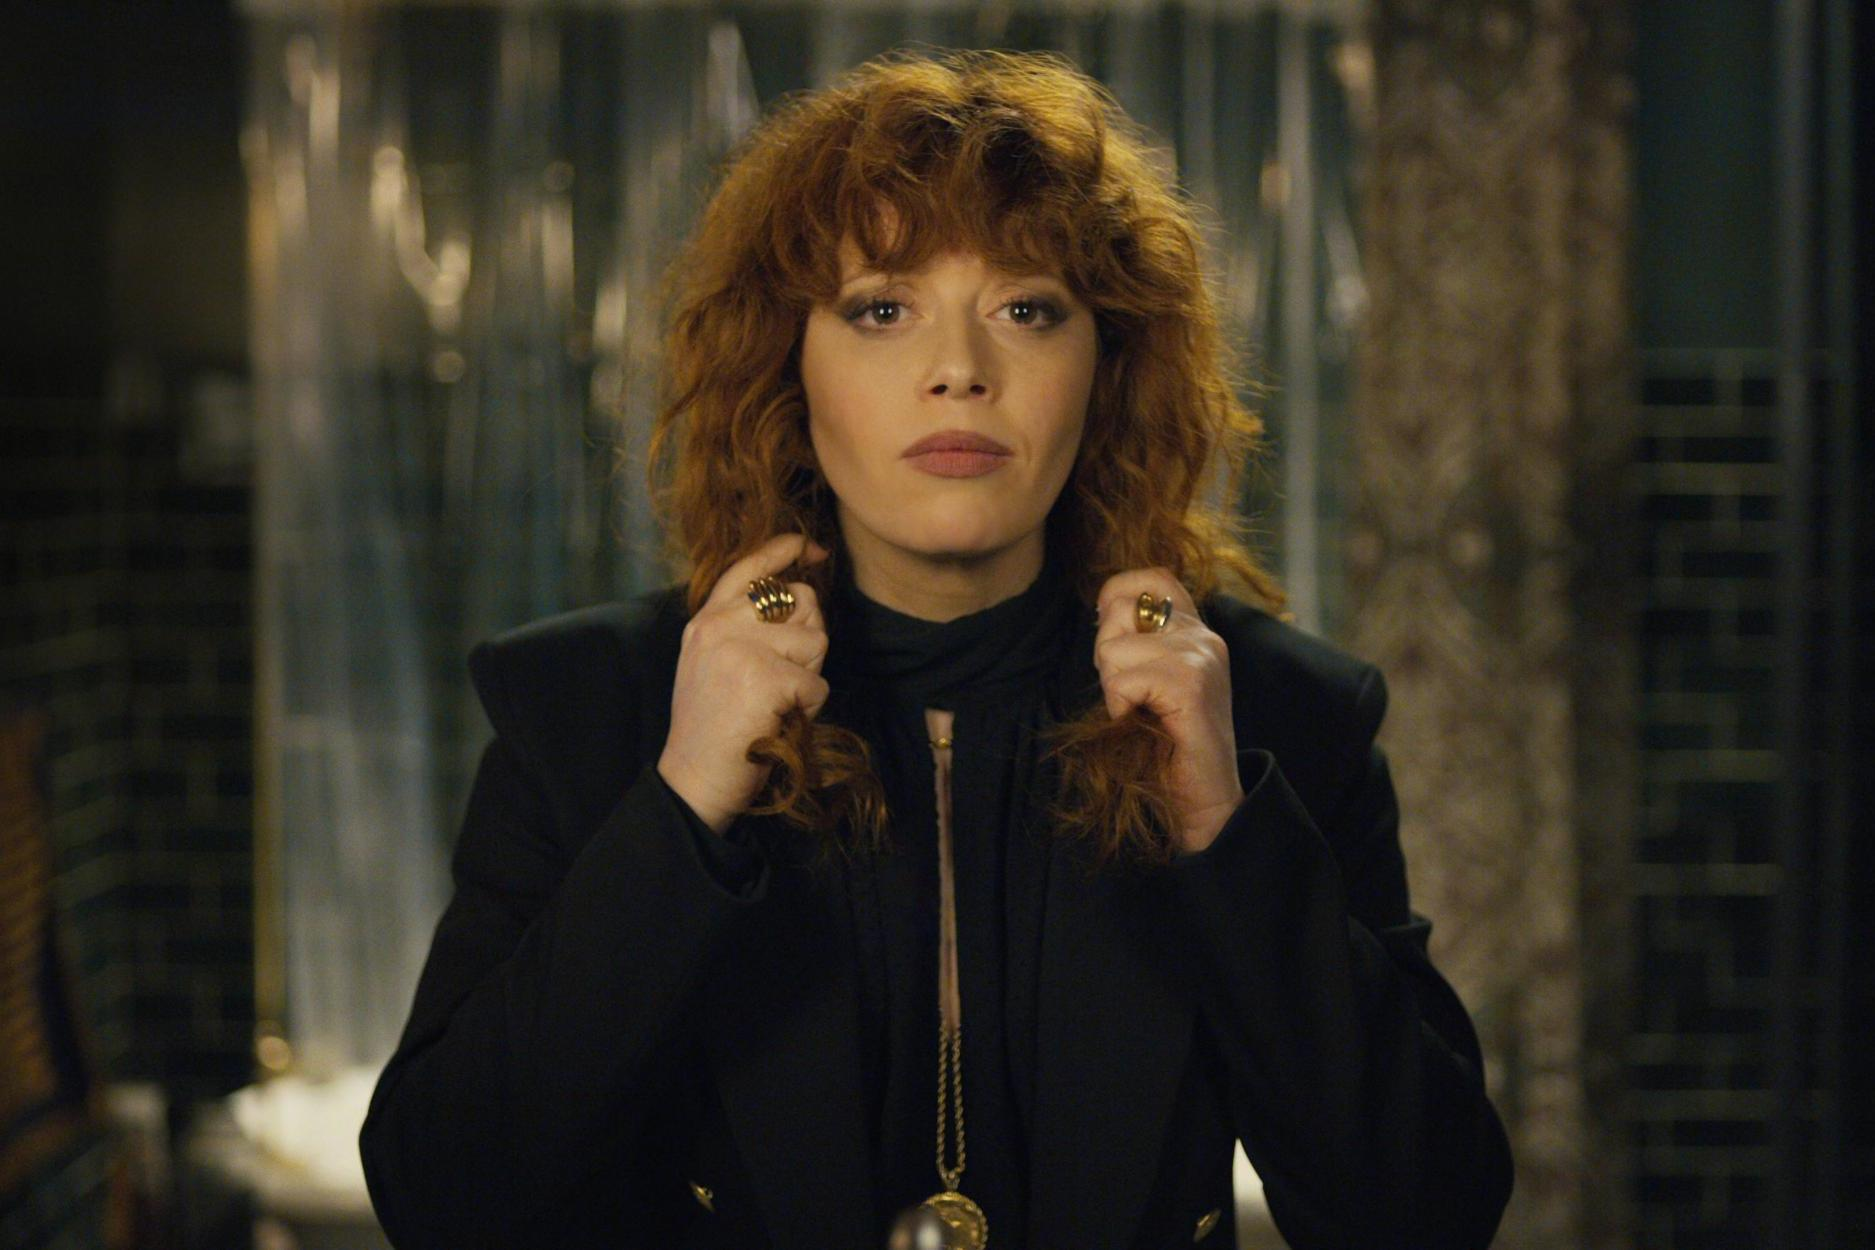 Russian Doll season 2: Natasha Lyonne talks about Netflix show's possible return